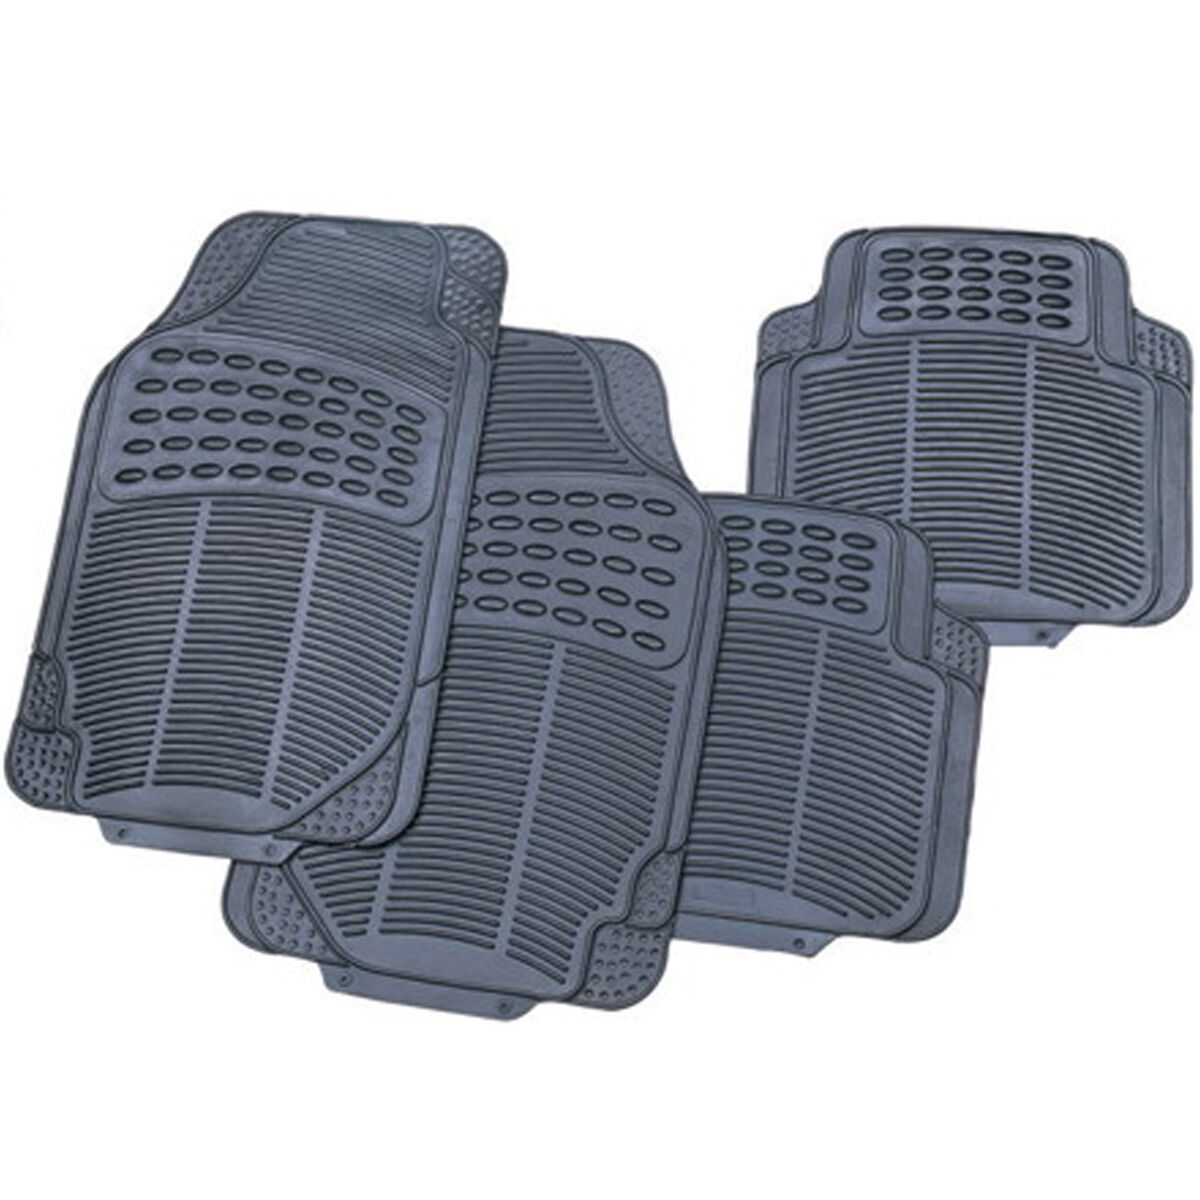 Car Parts - 4 PIECE HEAVY DUTY UNIVERSAL BLACK RUBBER CAR MAT SET NON SLIP GRIP VAN MATS